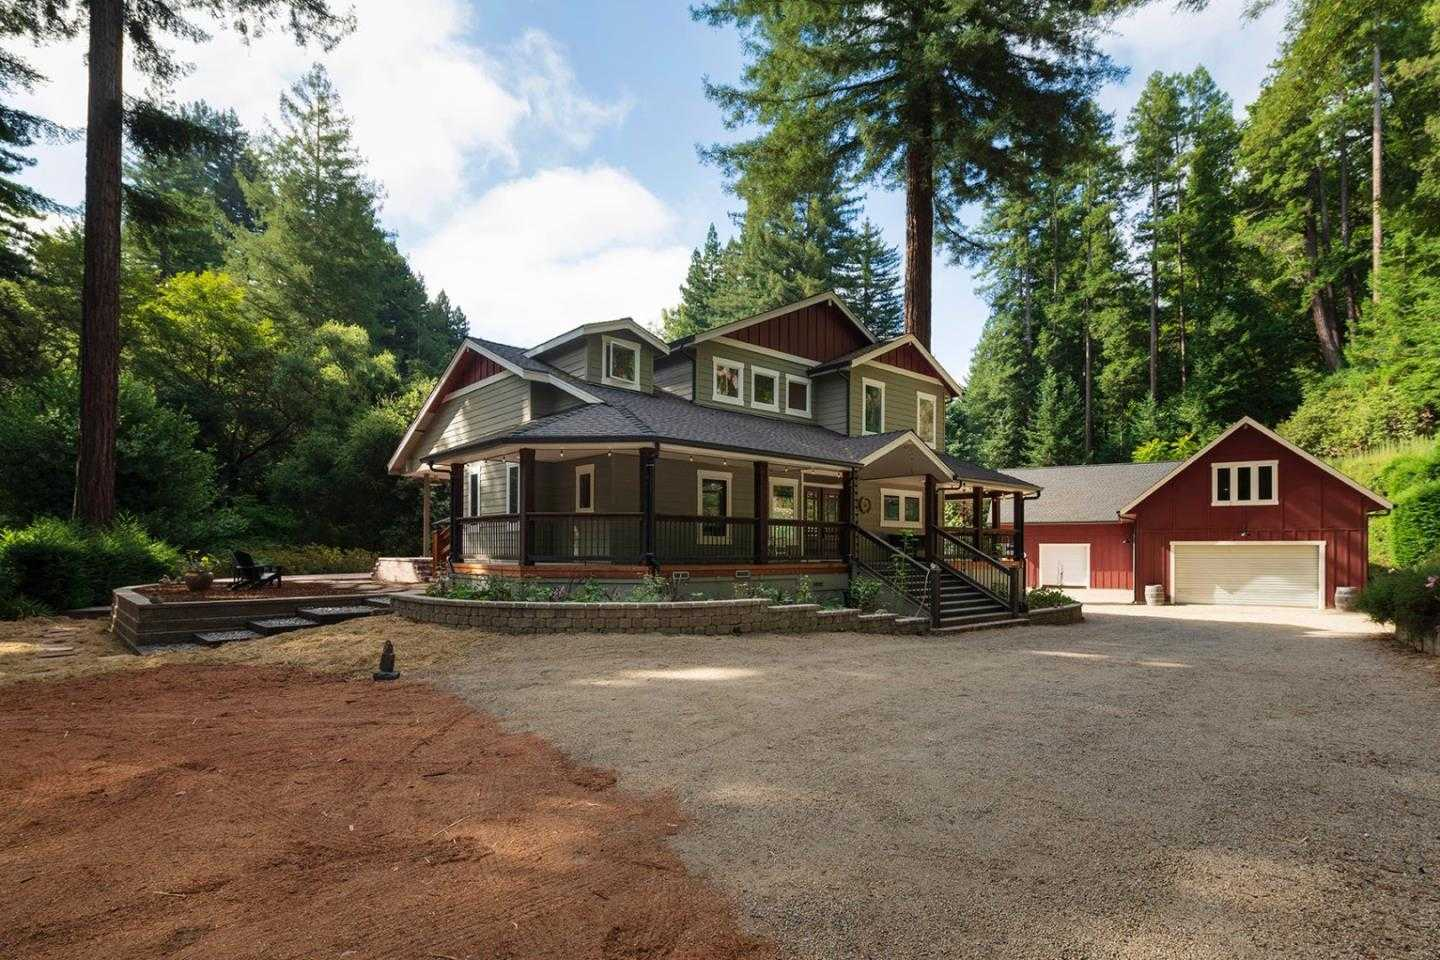 $2,350,000 - 3Br/4Ba -  for Sale in Scotts Valley